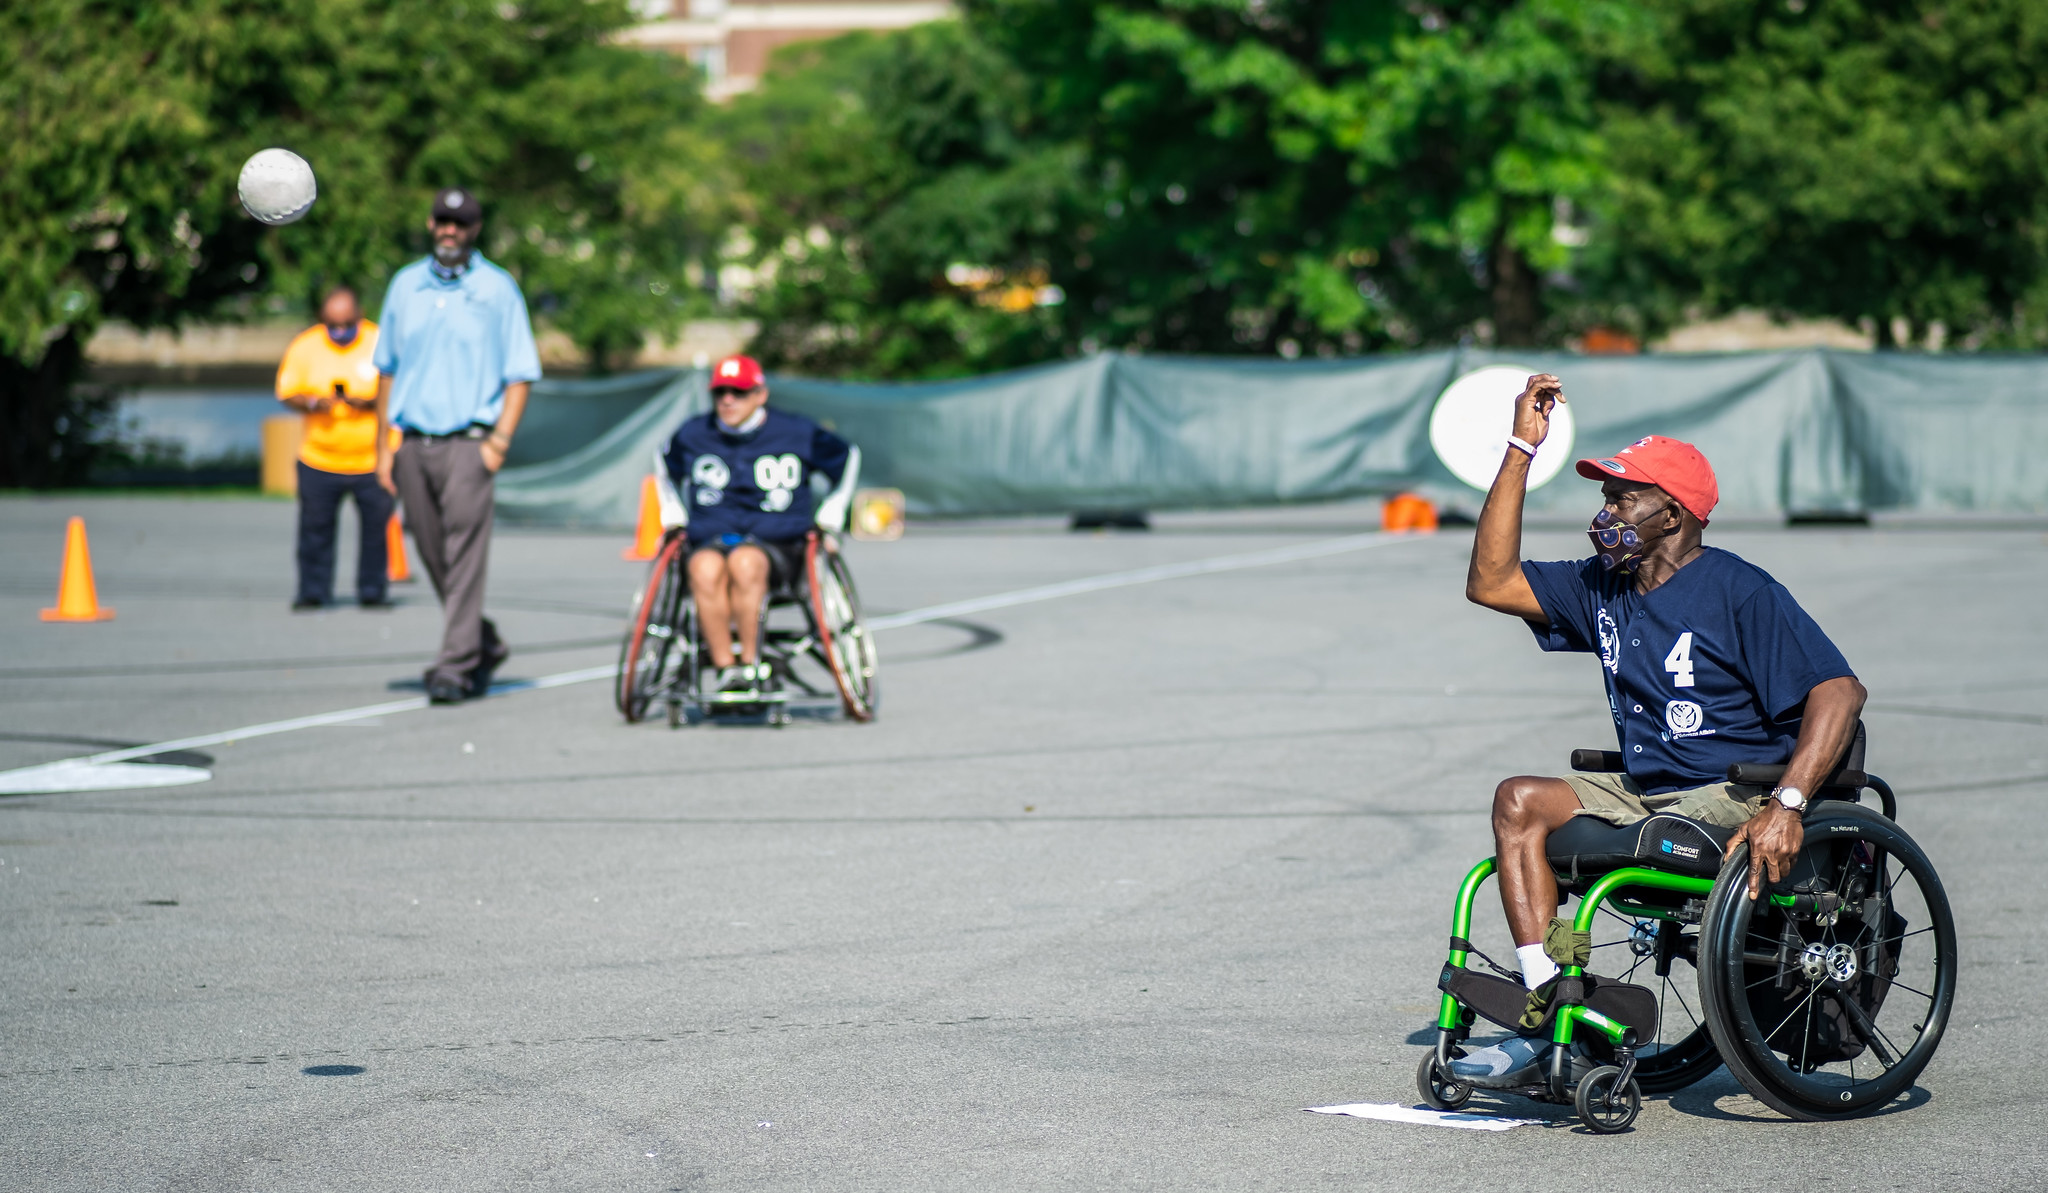 Air Force Veteran Anthony Evans of the Mets pitches during wheelchair softball competition at the 40th National Veterans Wheelchair Games.